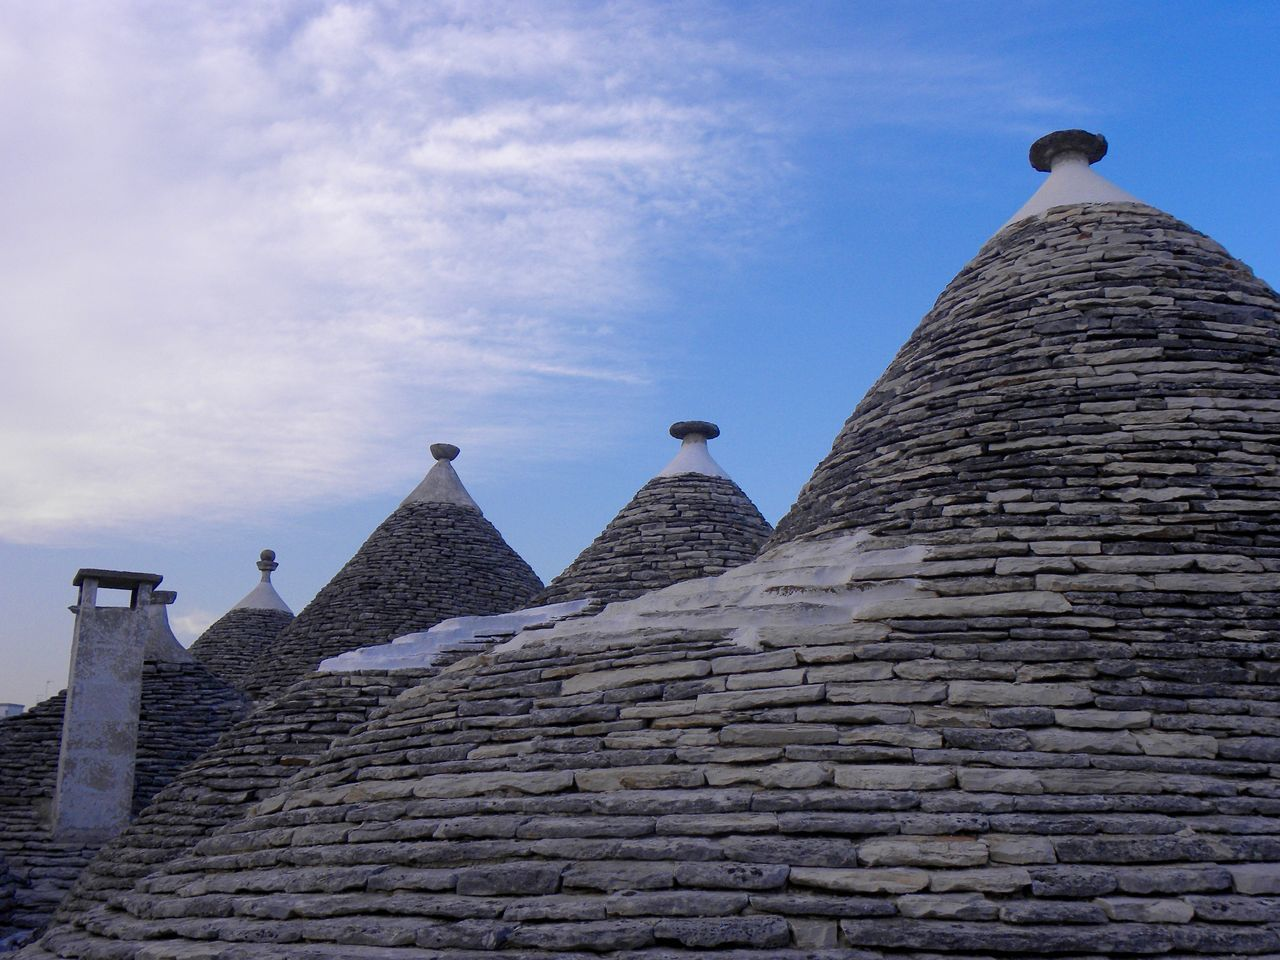 Alberobello Alberobello - Puglia Alberobello City Alberobelloexperience Alberobellophotocontest Ancient Ancient Civilization Animal Themes Architecture Building Exterior Built Structure Day History Low Angle View No People Old Ruin Outdoors Pyramid Sky The Past Travel Destinations